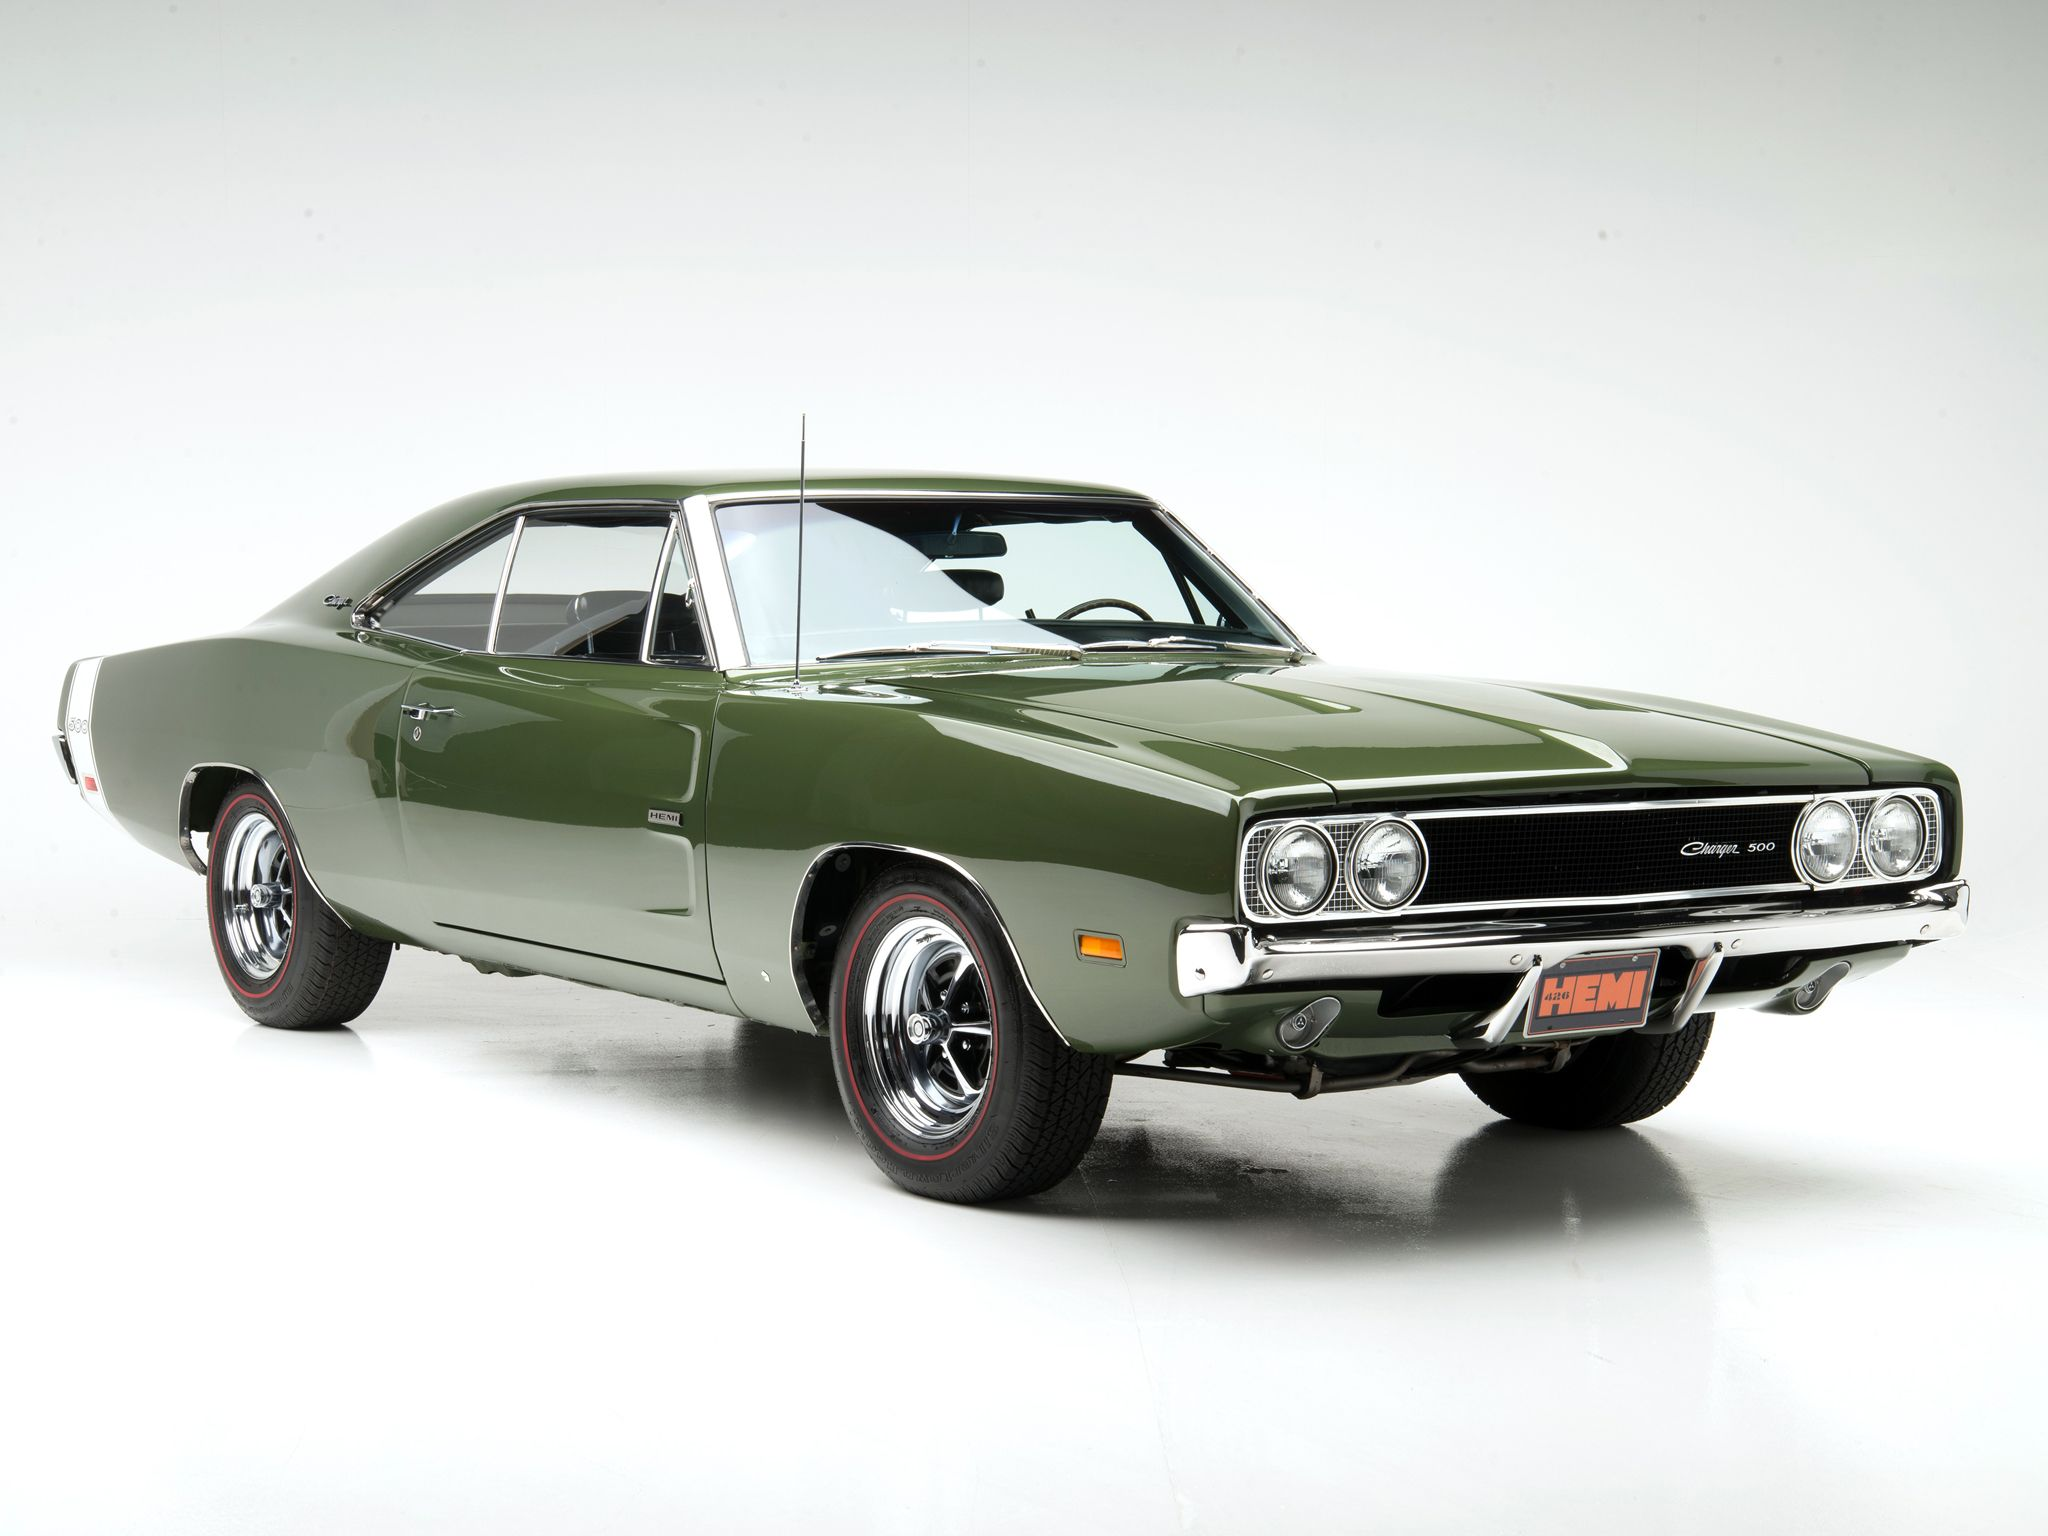 1969 dodge charger Yahoo Image Search Results